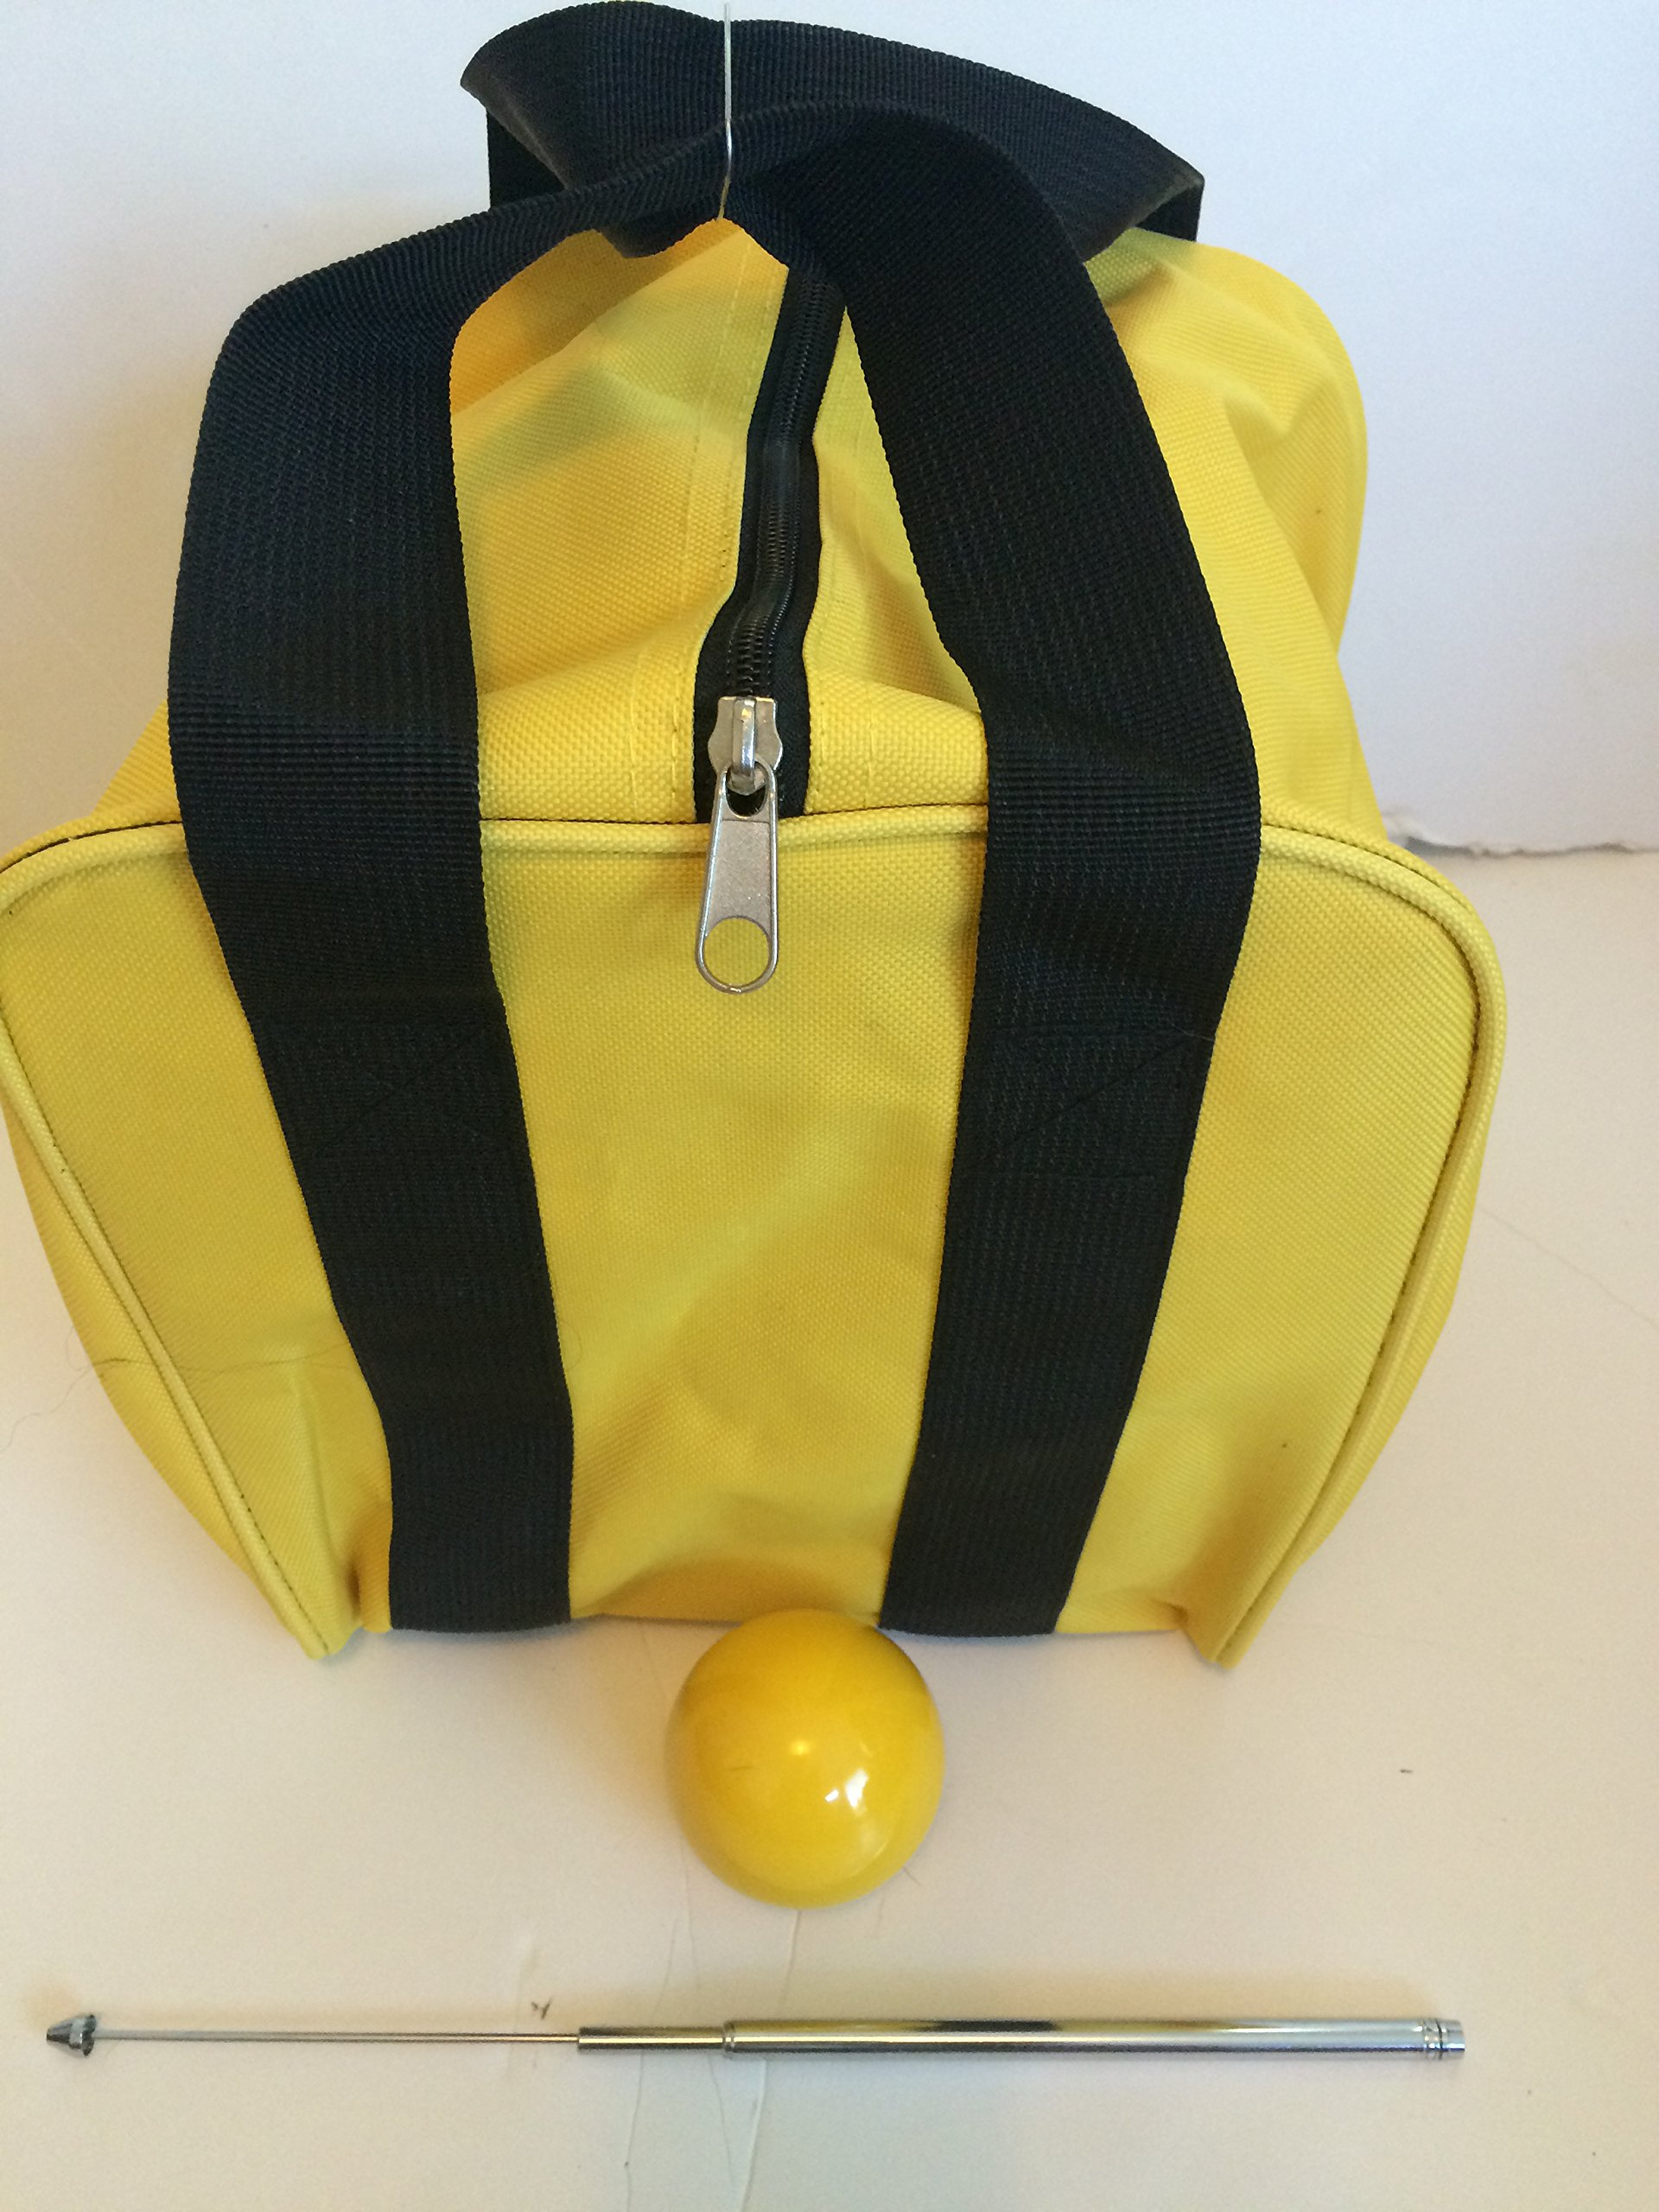 Unique Bocce Accessories Package - Extra Heavy Duty Nylon Bocce Bag (Yellow with Black Handles), Yellow pallina, Extendable Measuring Device